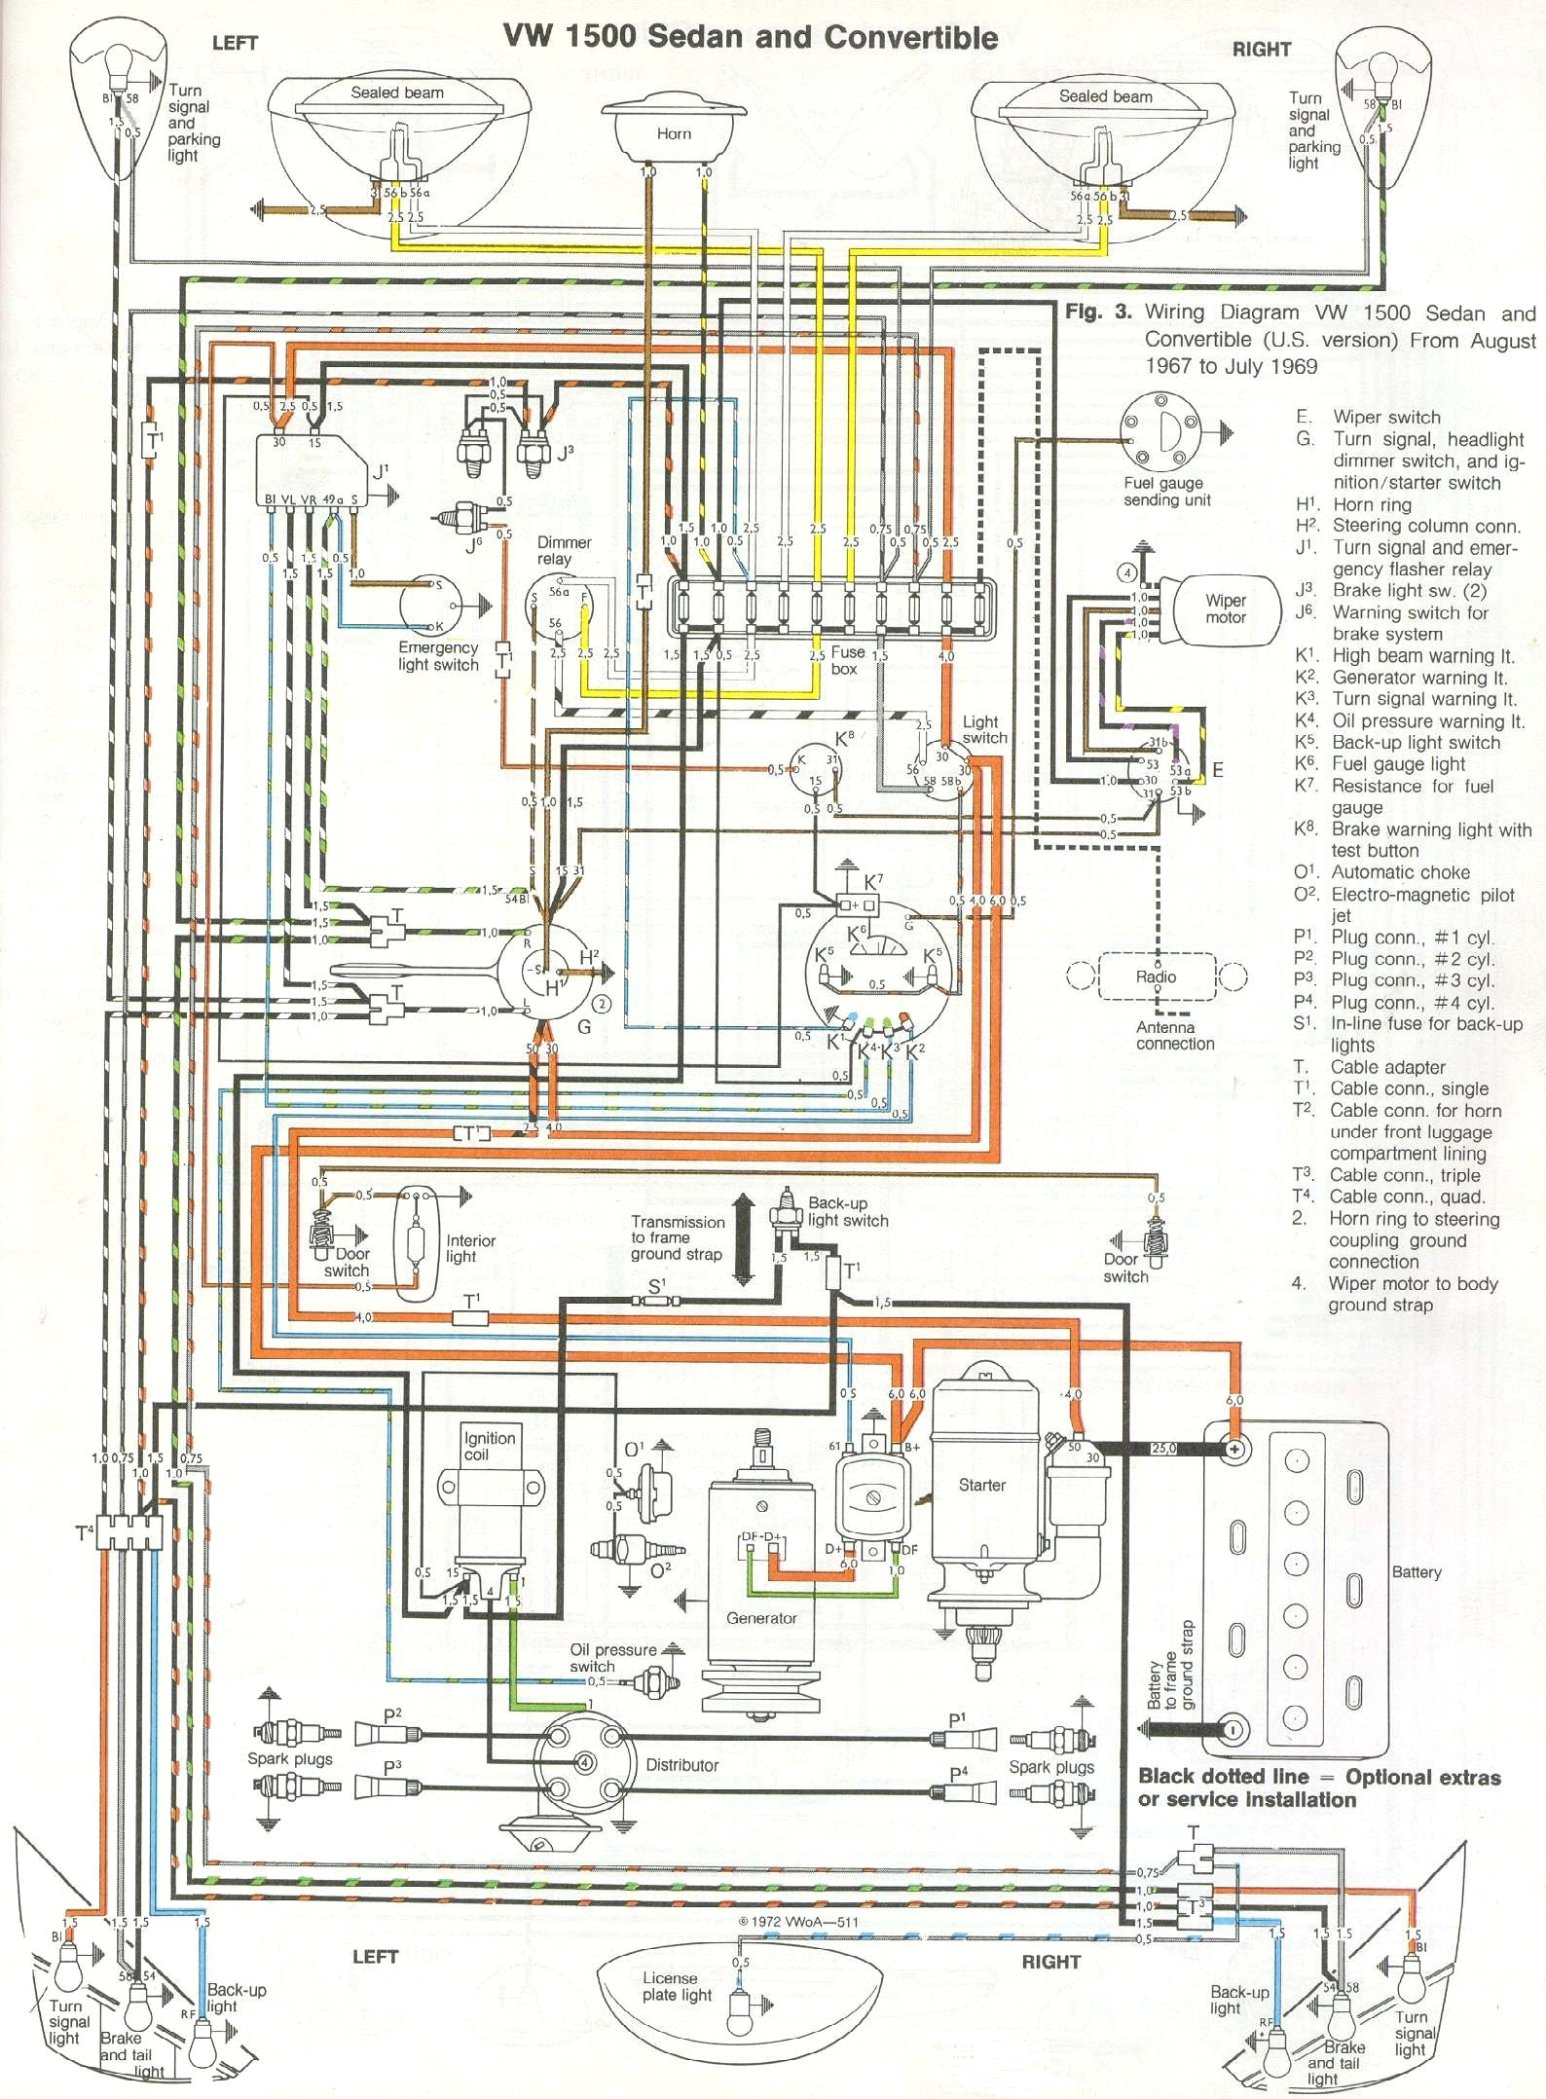 How to change replace install column head light wiper switch honda - Volkswagen Ac Wiring Diagrams Volkswagen Schematic Engine Wiring Bug 6869 Volkswagen Ac Wiring Diagrams